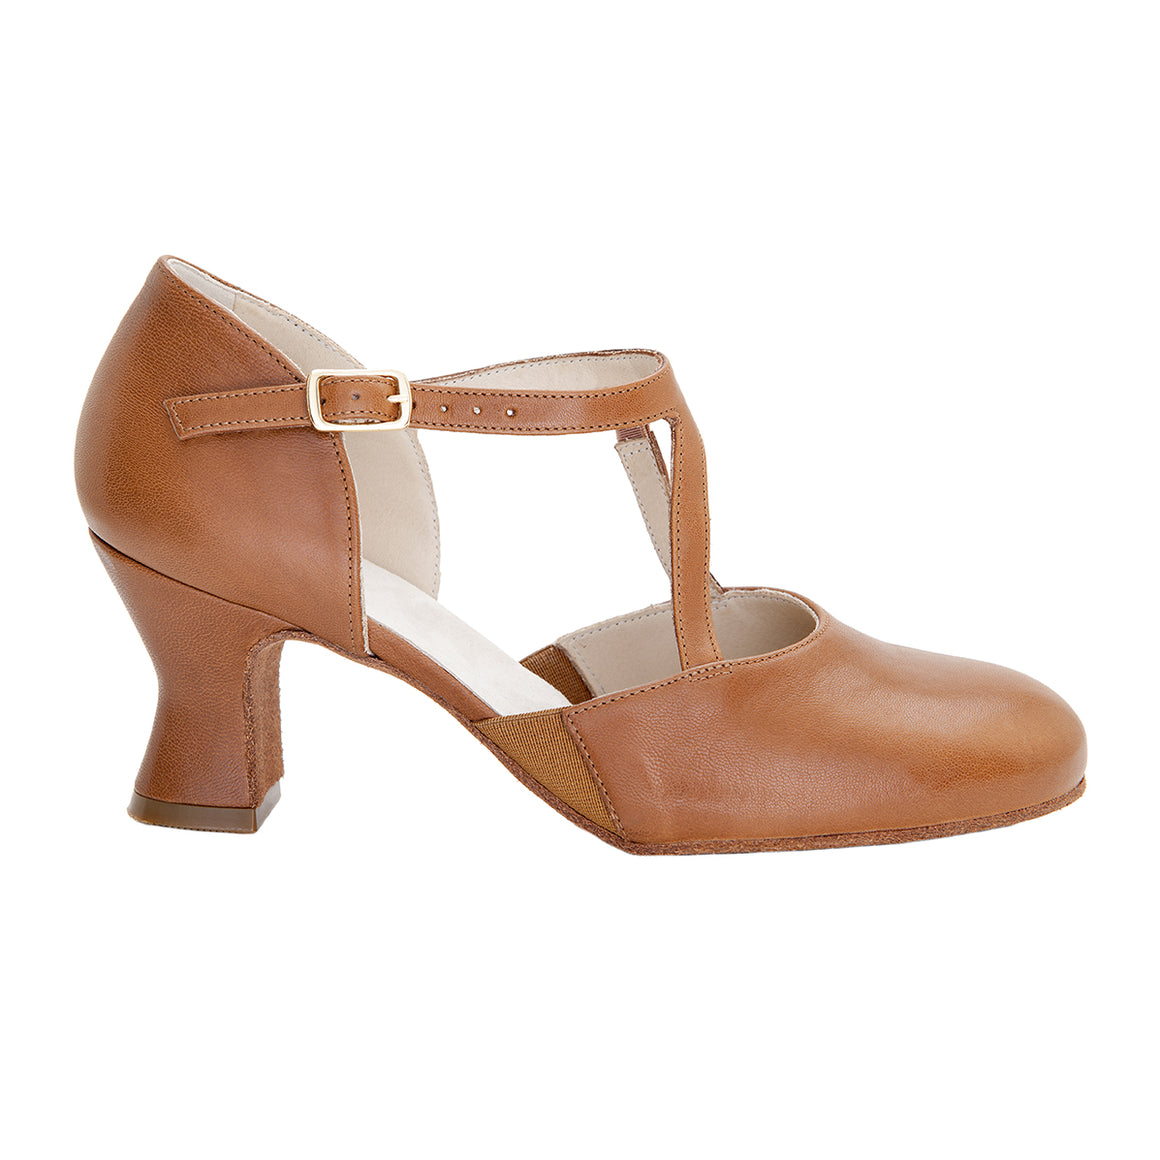 "Alexis 2.5"" Soft Sole - Cinnamon"